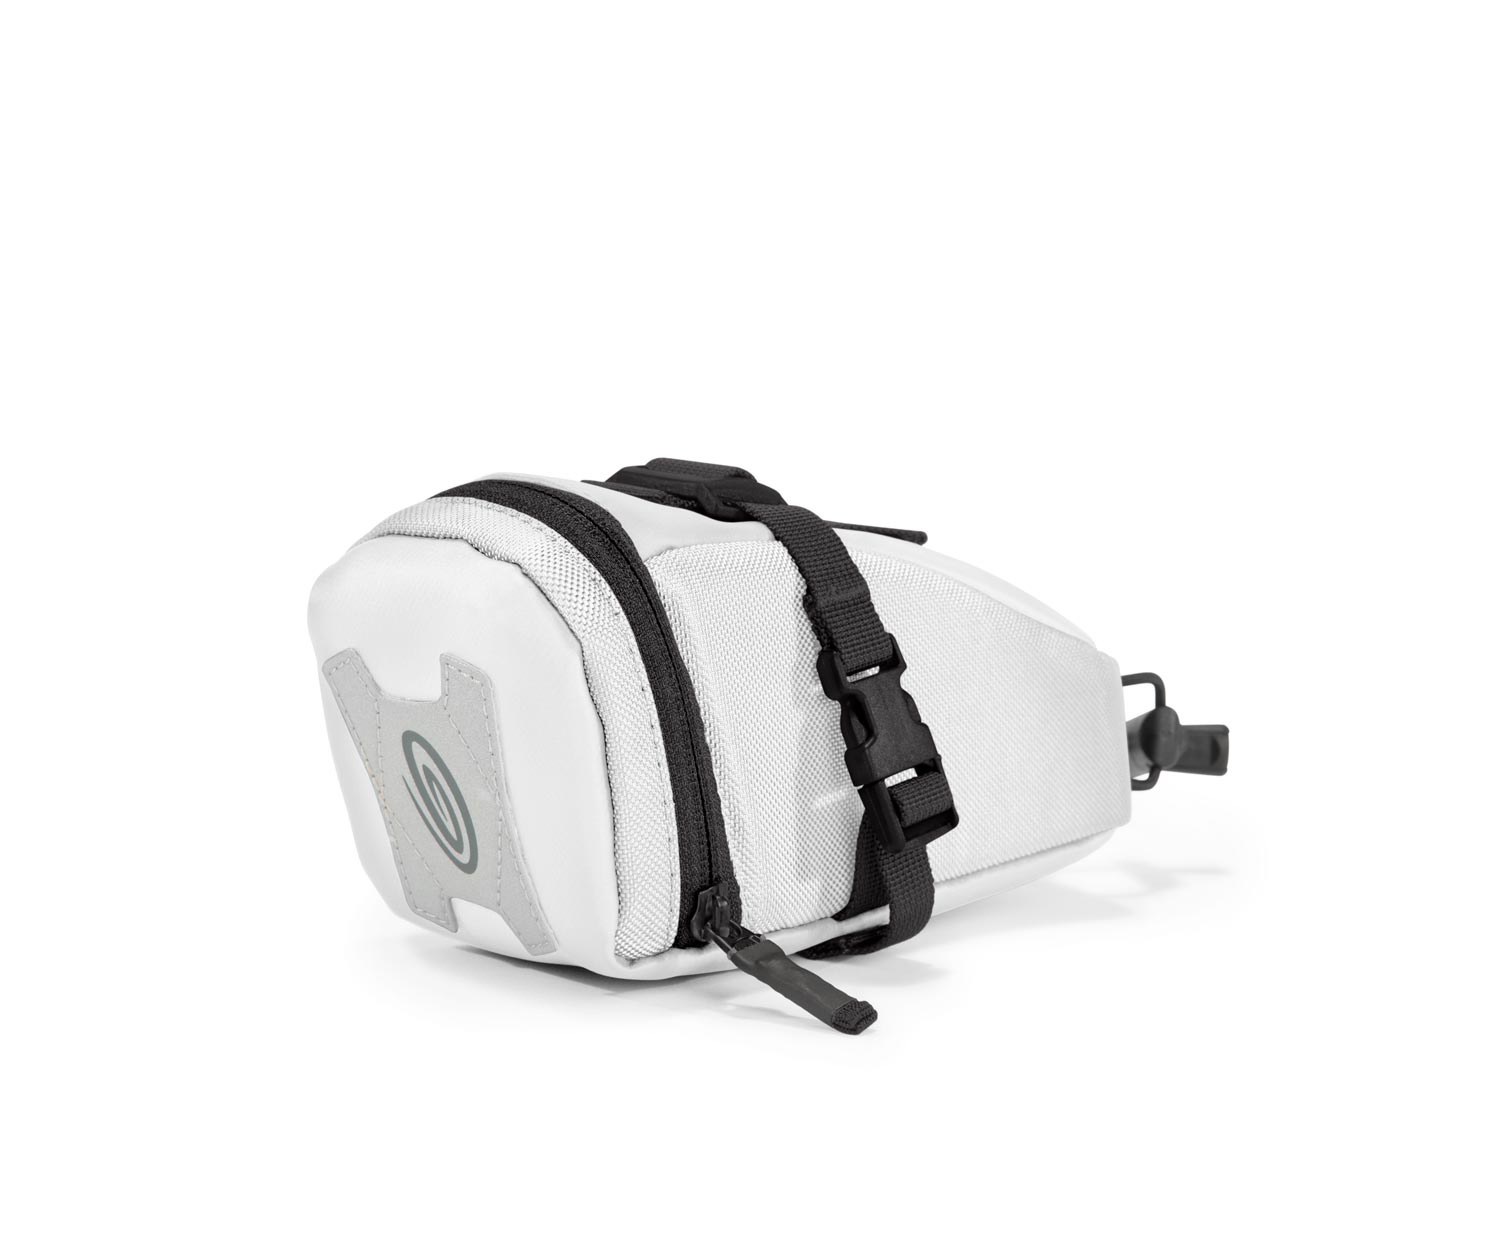 Timbuk2 Saddle Bag Seat Pack XT Medium White